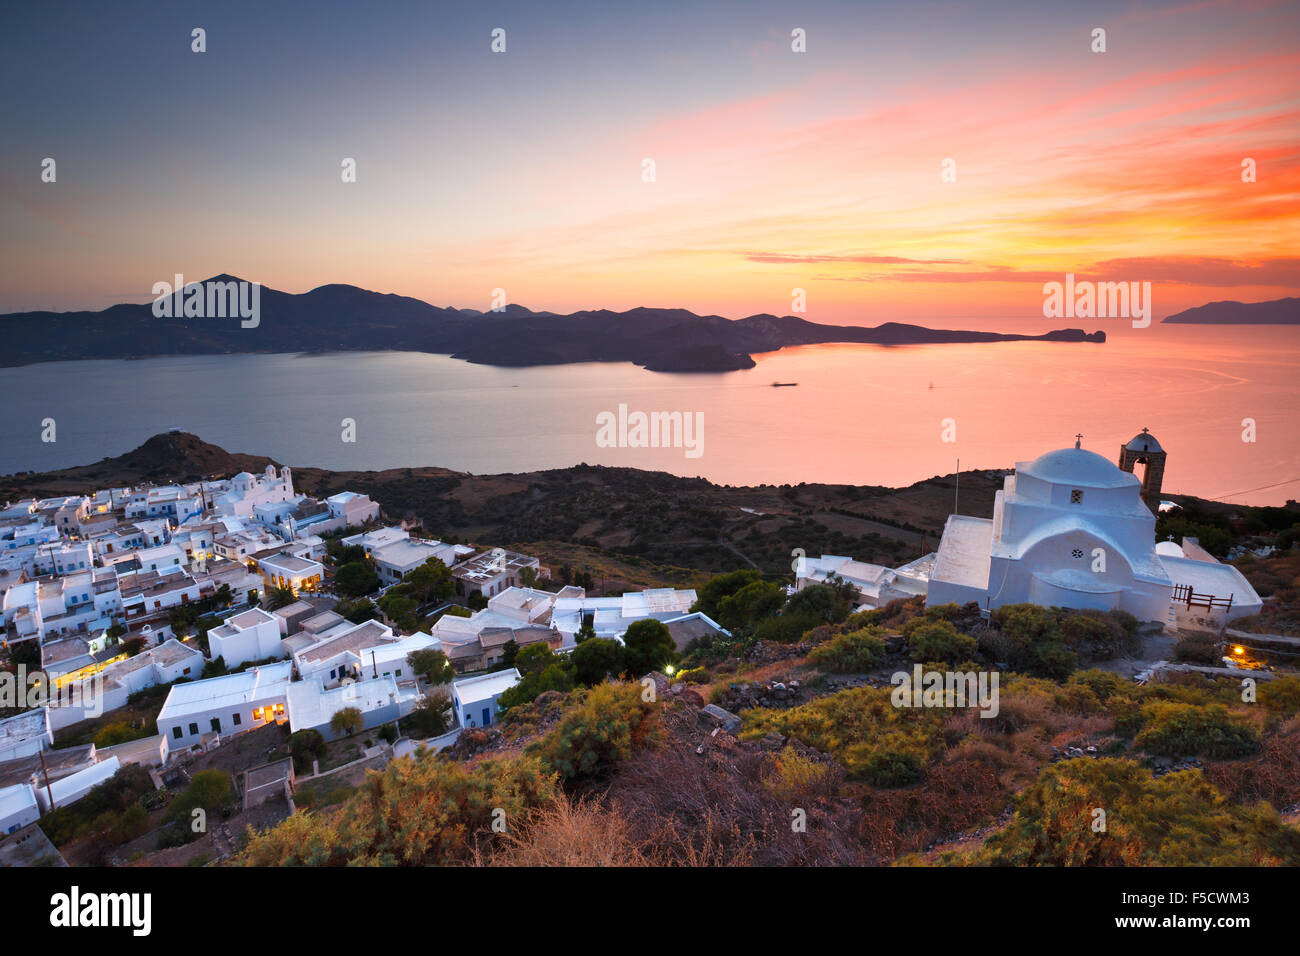 View of Milos bay and Plaka village, the capital of Milos island, Greece. - Stock Image